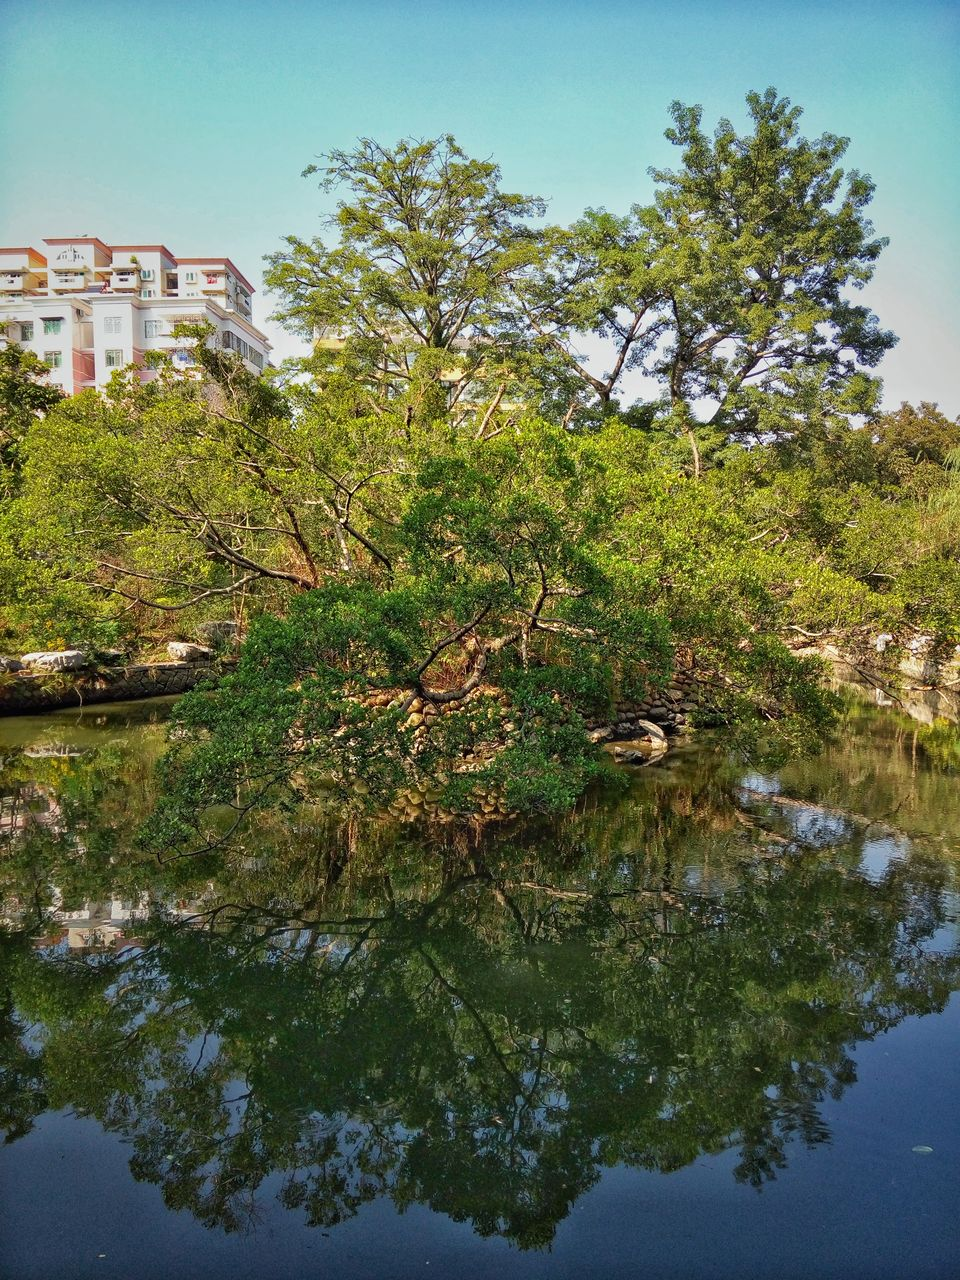 tree, reflection, architecture, built structure, building exterior, water, day, no people, waterfront, outdoors, nature, lake, growth, sky, clear sky, beauty in nature, animal themes